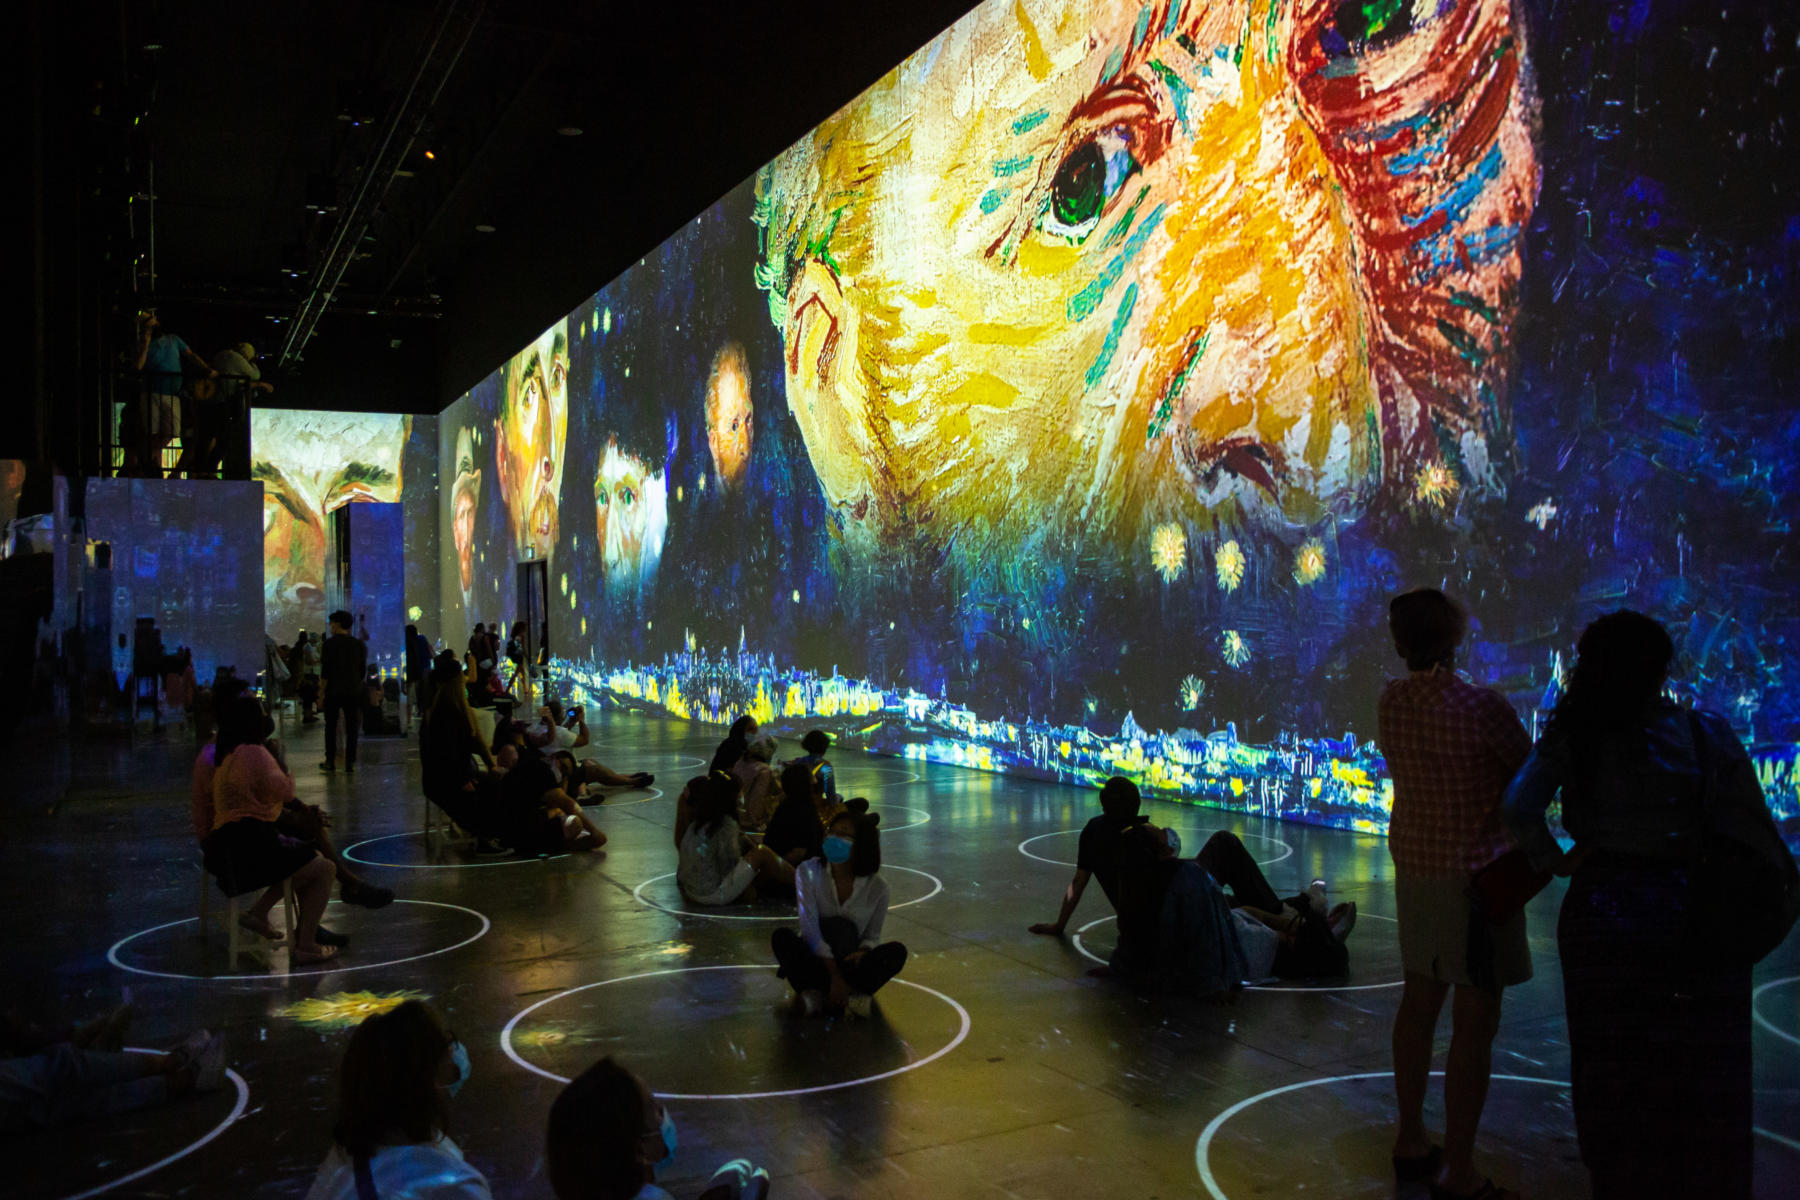 Photos from the Van Gogh Immersive Experience museum